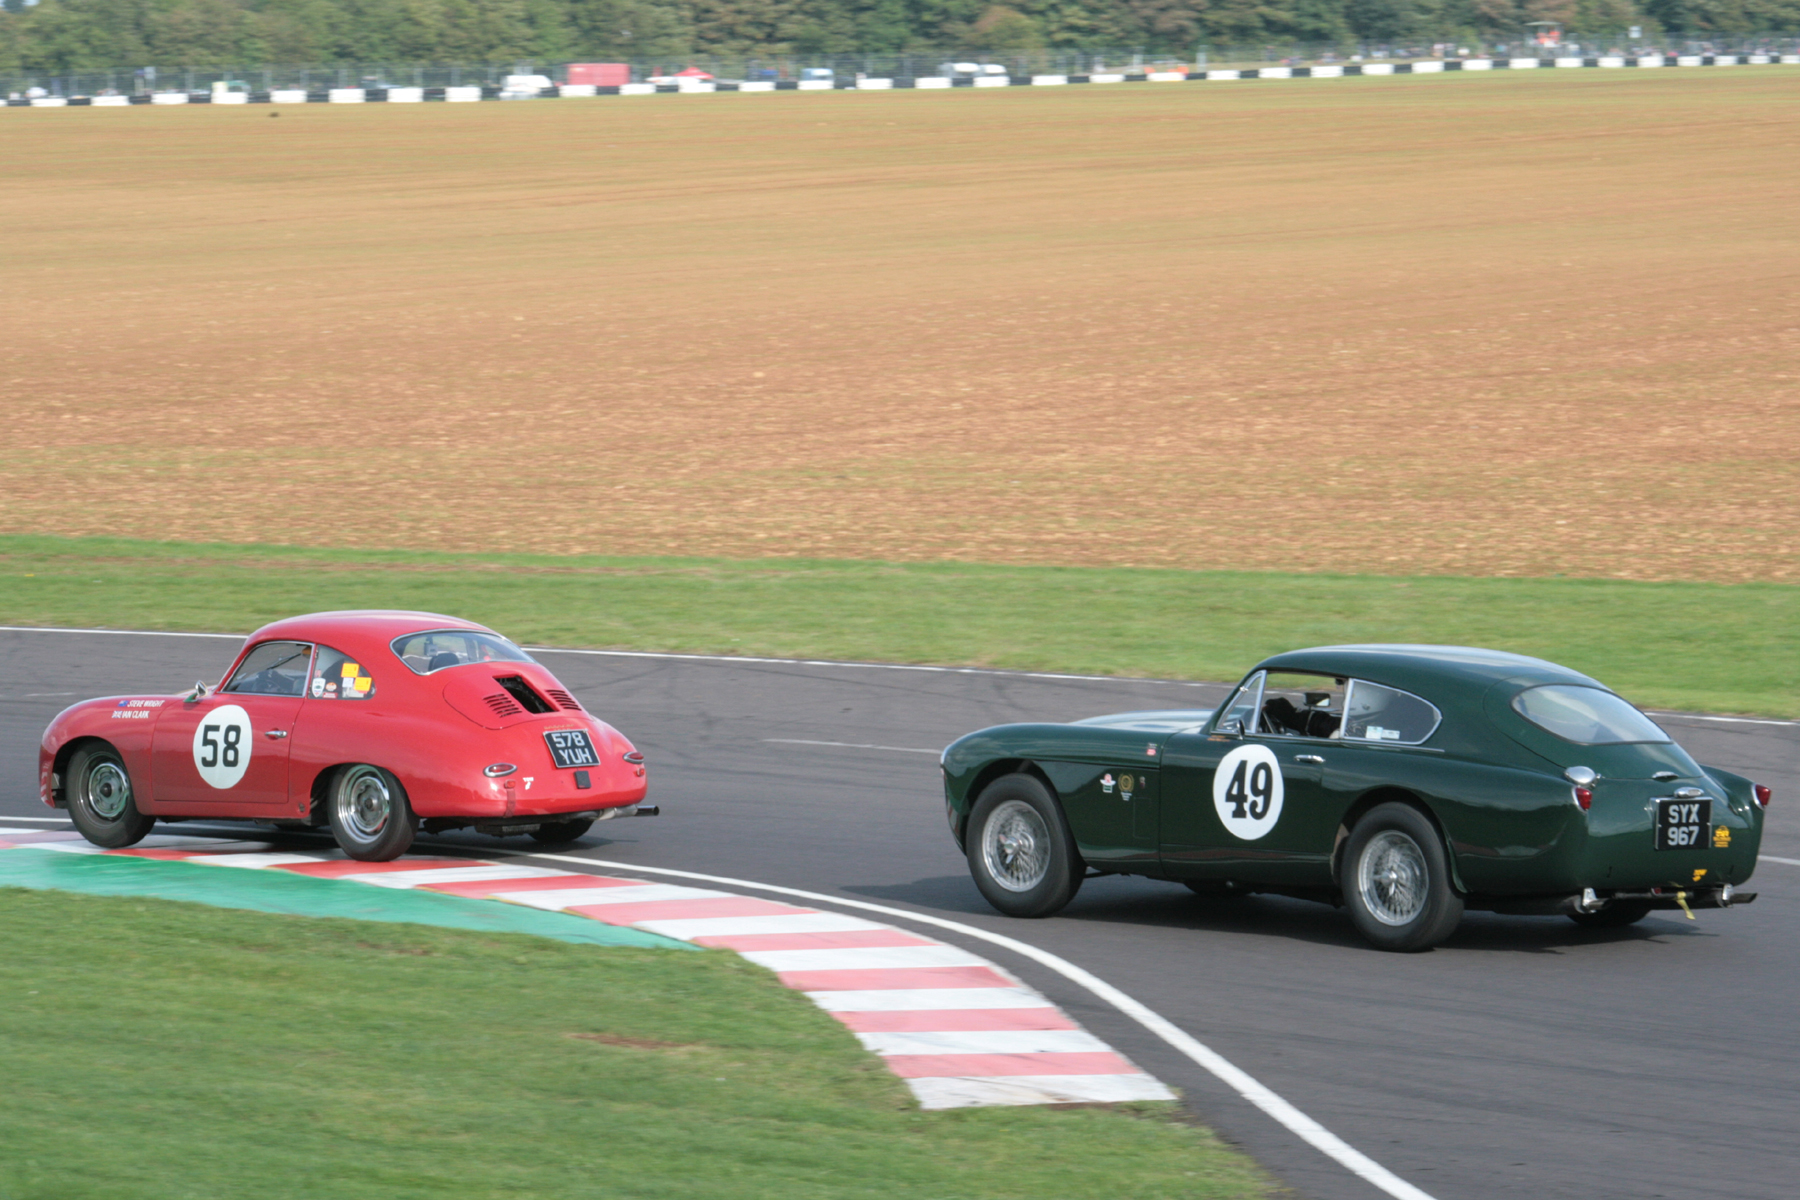 Steve Wright (Porsche 356) comes under increasing pressure from Chris Woodgate in the DB MKIII   Photo - John Turner